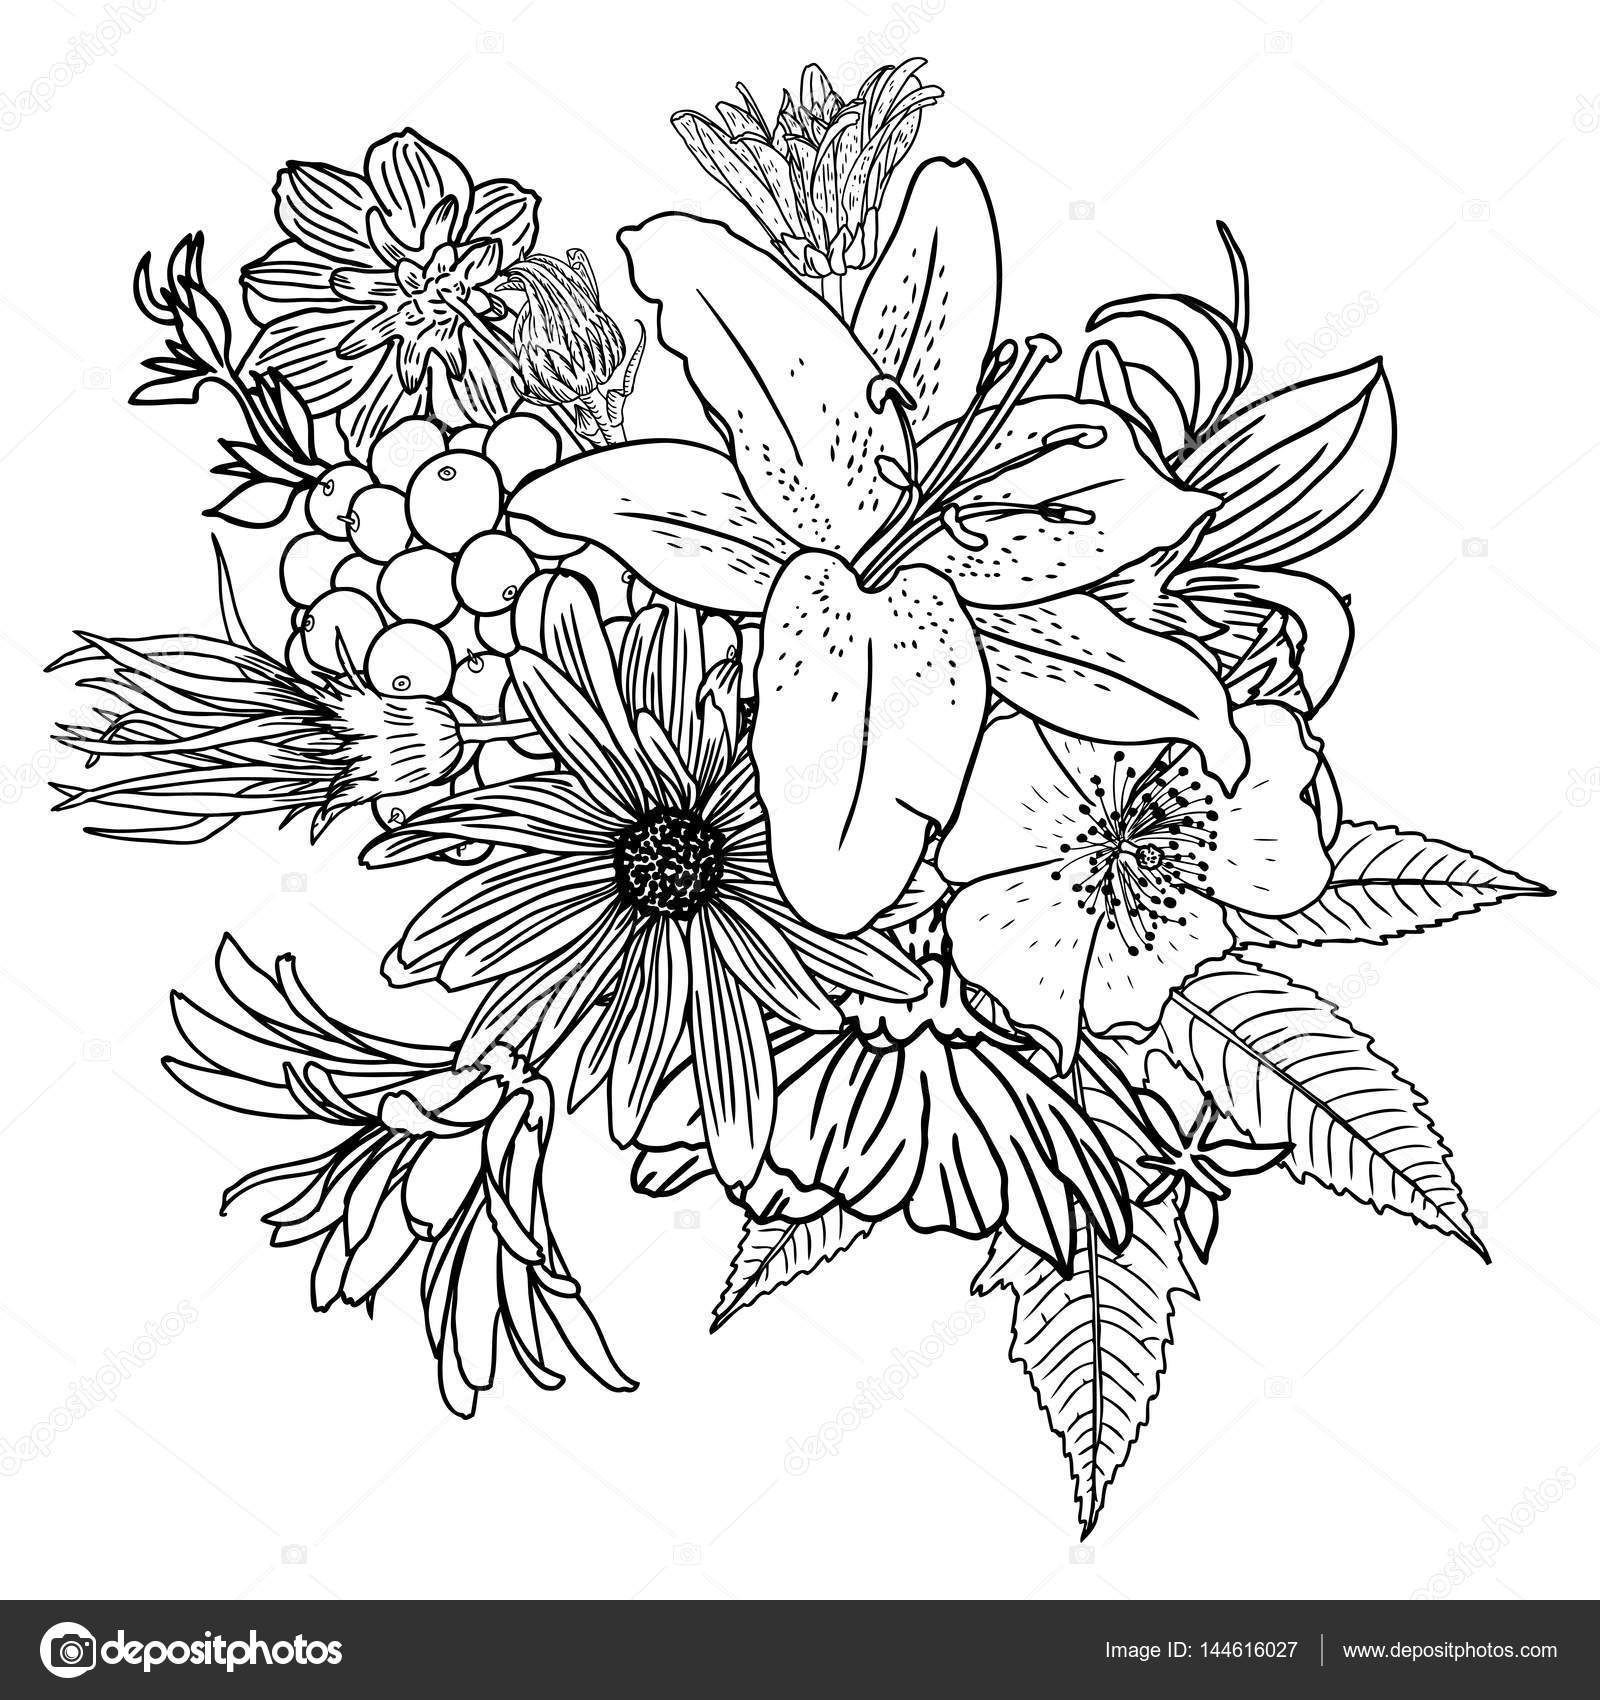 Flower Line Drawing Vintage : Flower bouquet line drawing imgkid the image